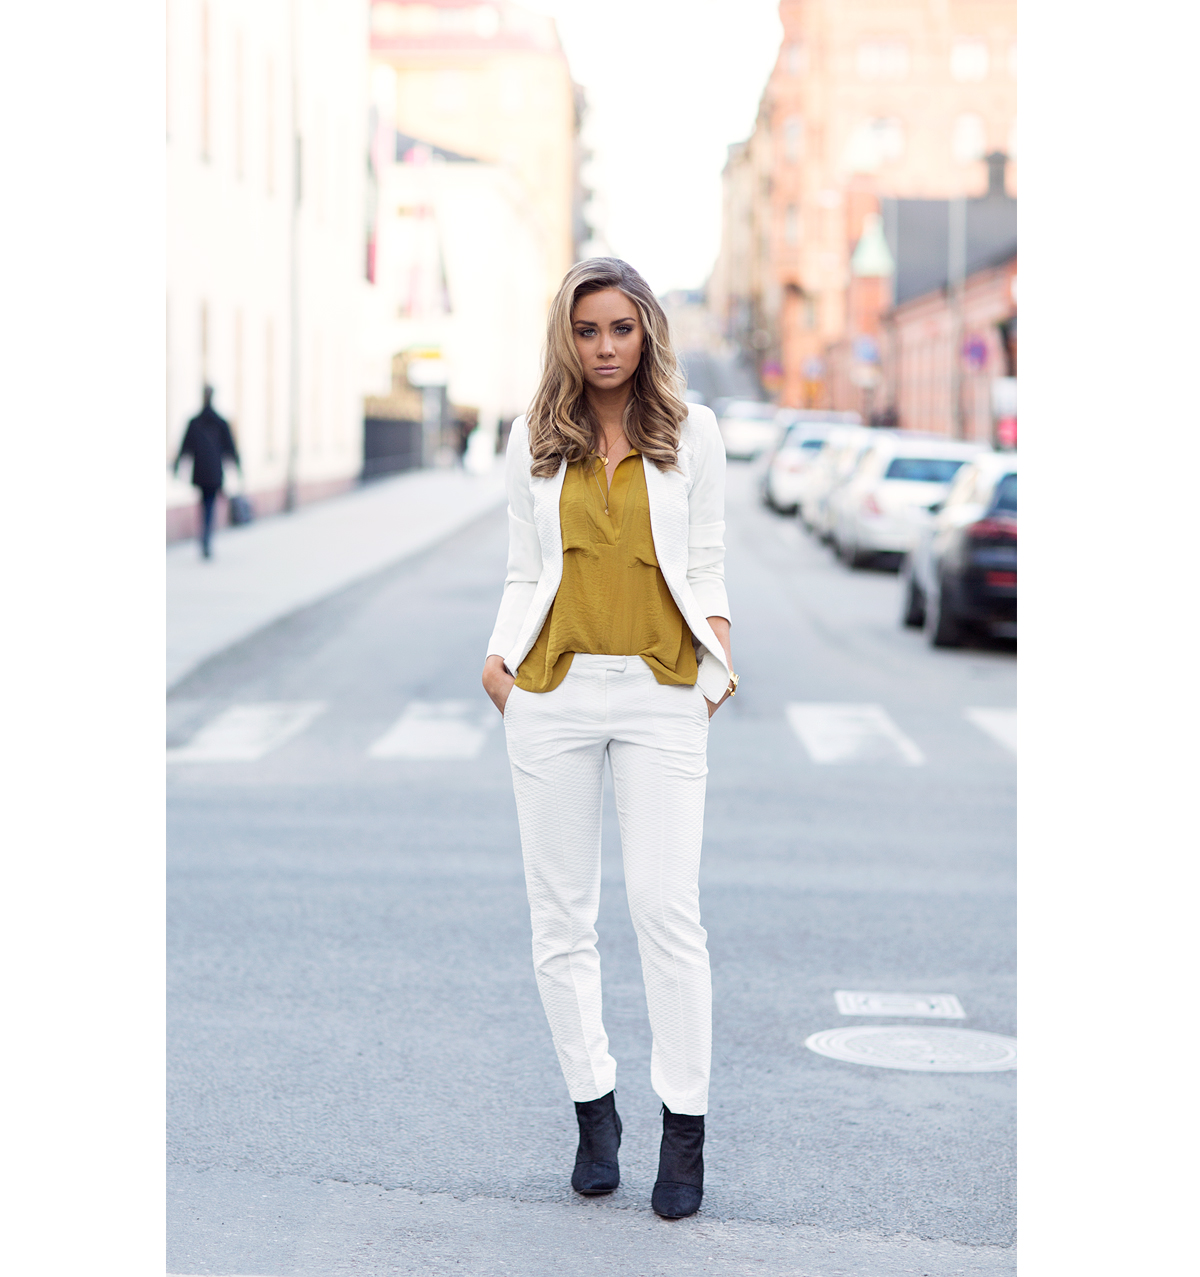 289f59f2adc A Trend In Autumn  How To Wear Yellow Mustard In Style  - Just The ...